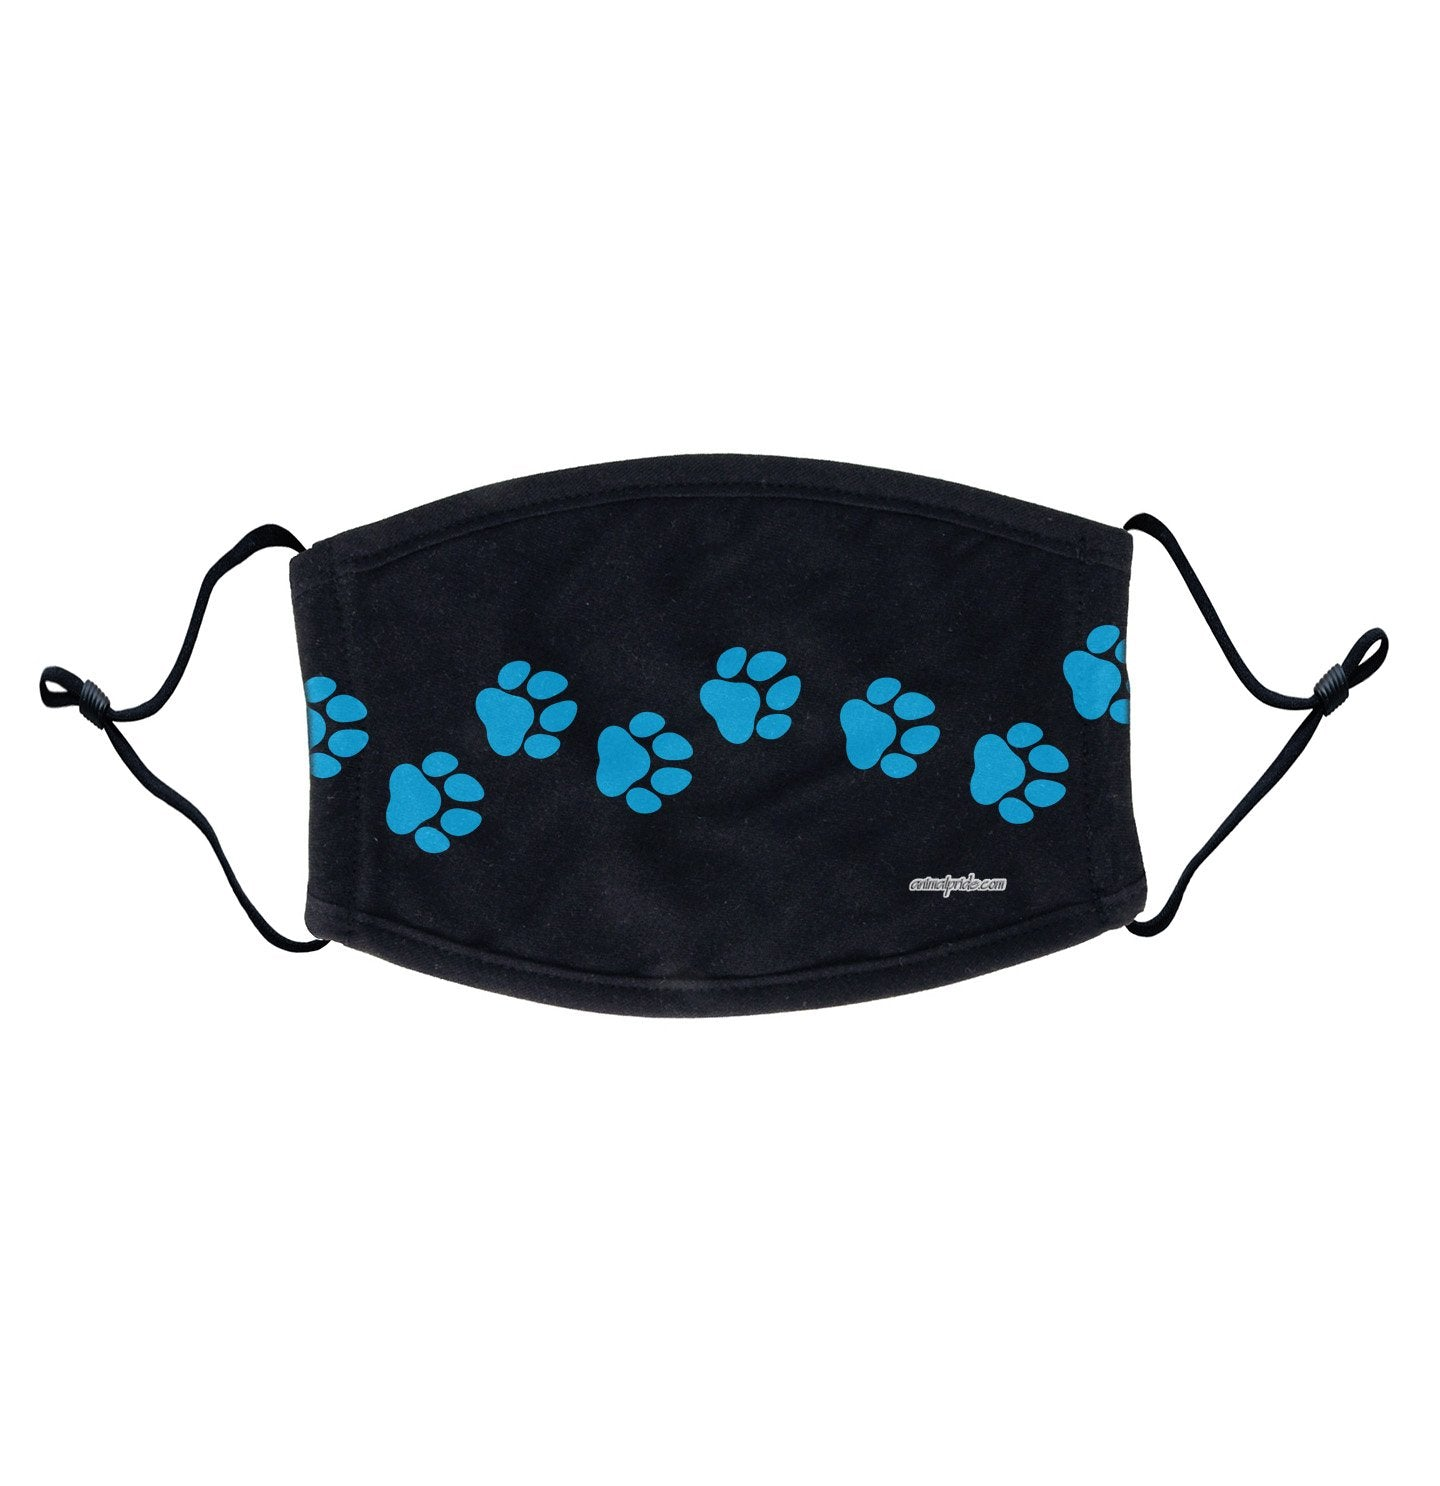 Blue Paw Prints - Adjustable Face Mask, Breathable, Reusable, Printed in USA